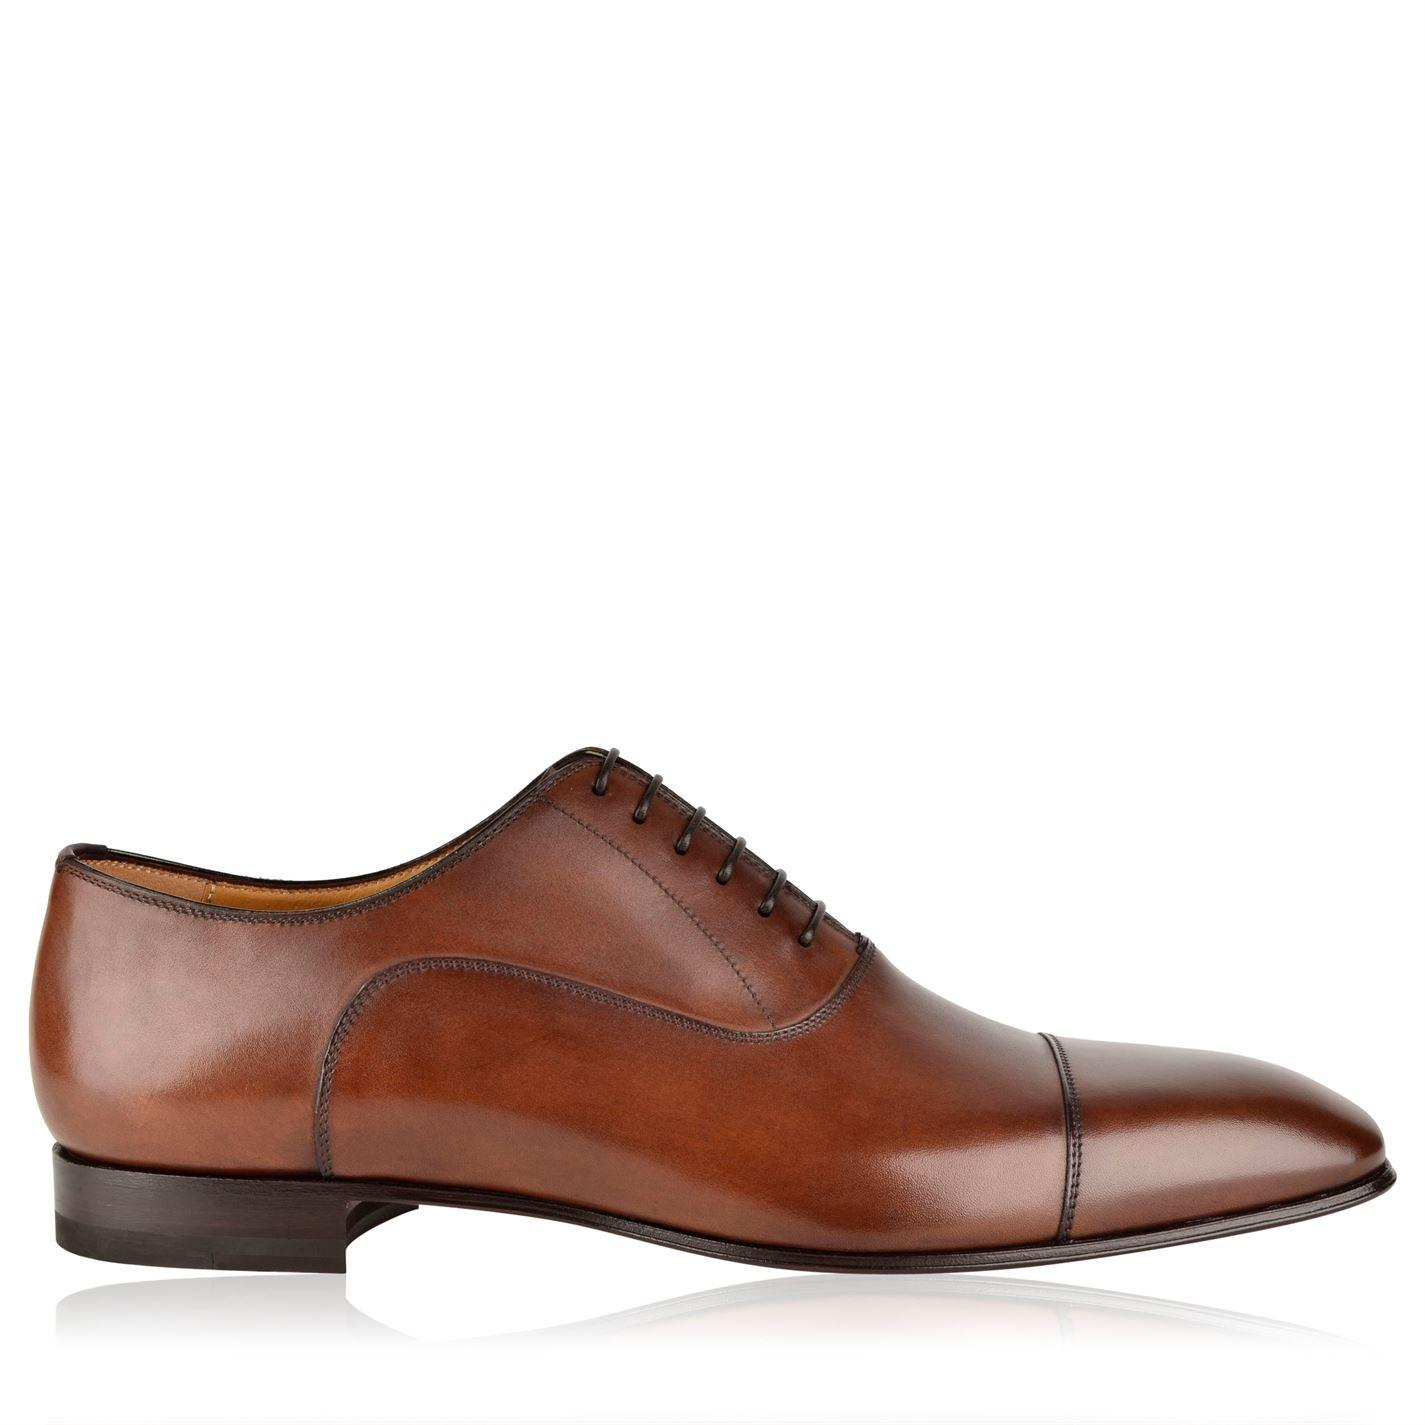 380dff5a5d4 Lyst - Christian Louboutin Greggo Oxford Shoes in Brown for Men